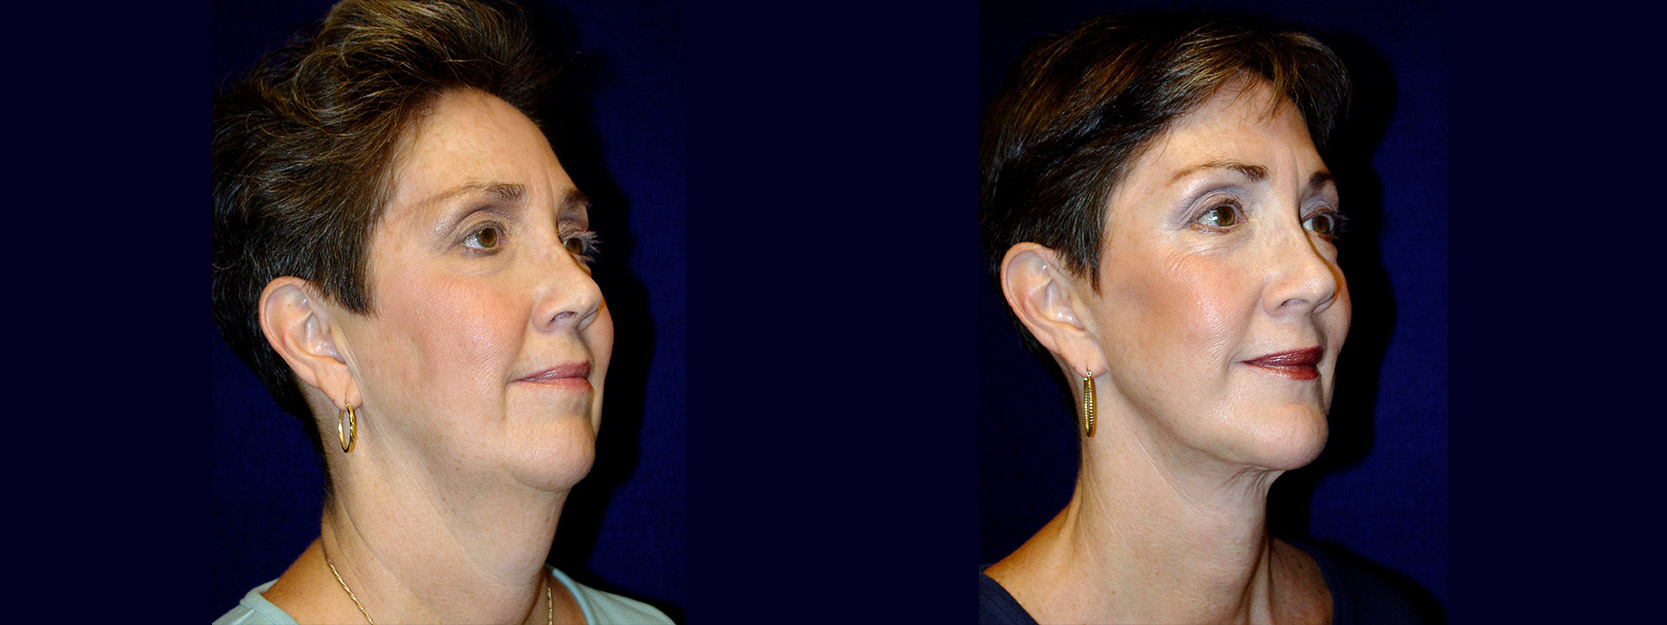 Right 3/4 View - Facelift & Chin Implant